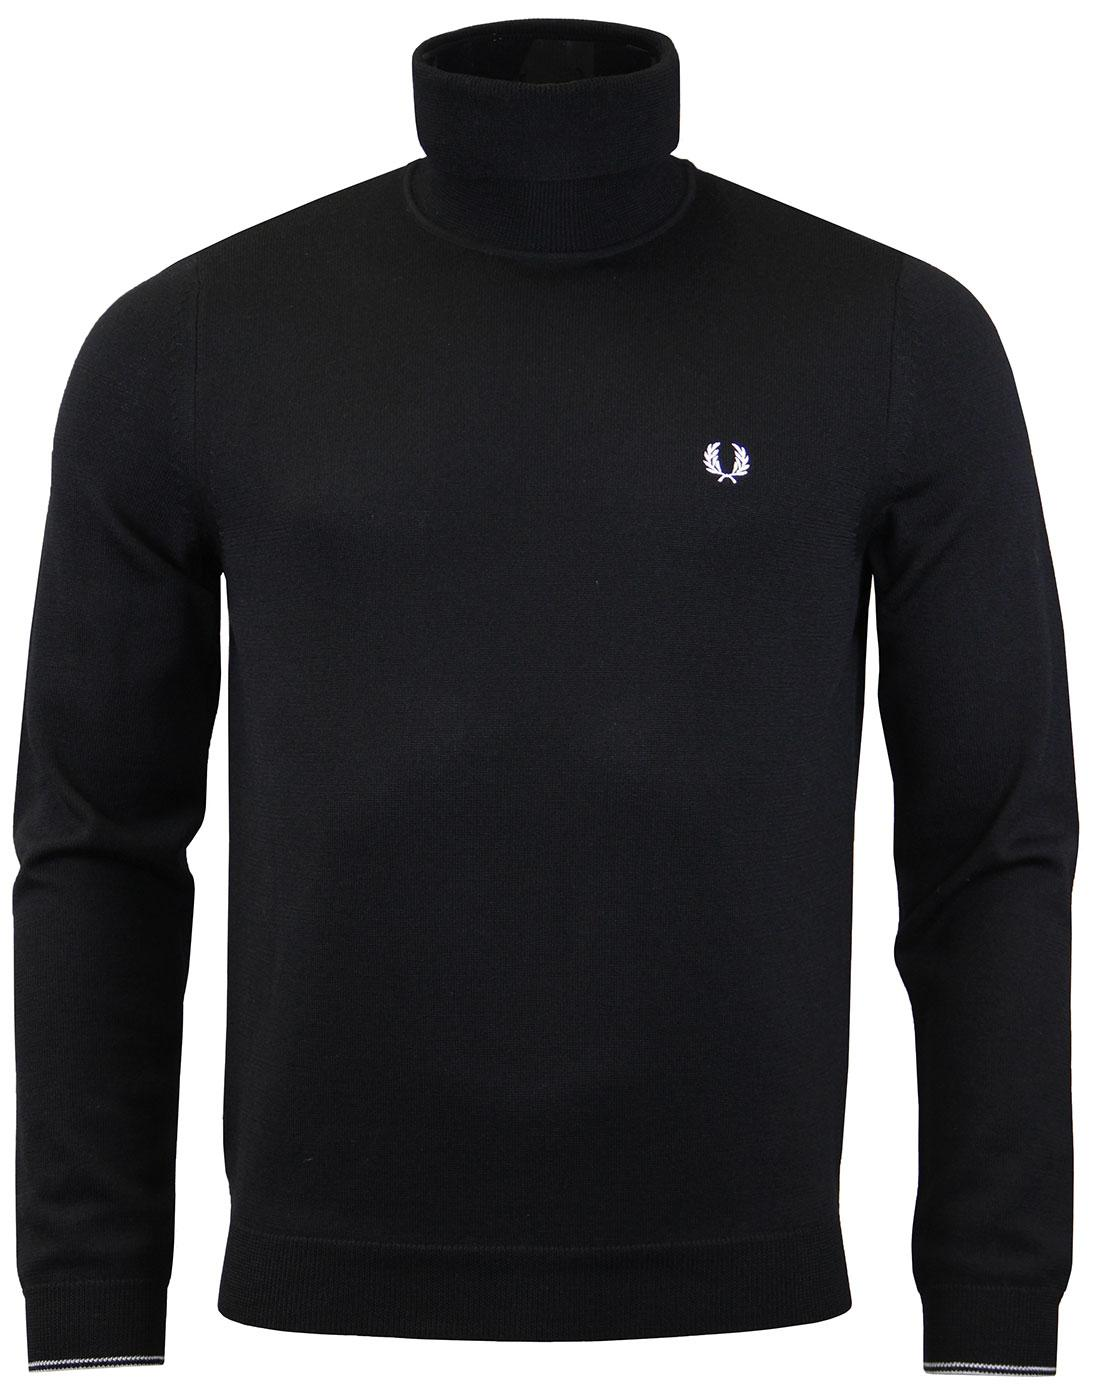 FRED PERRY K2503 Black Merino Roll Neck